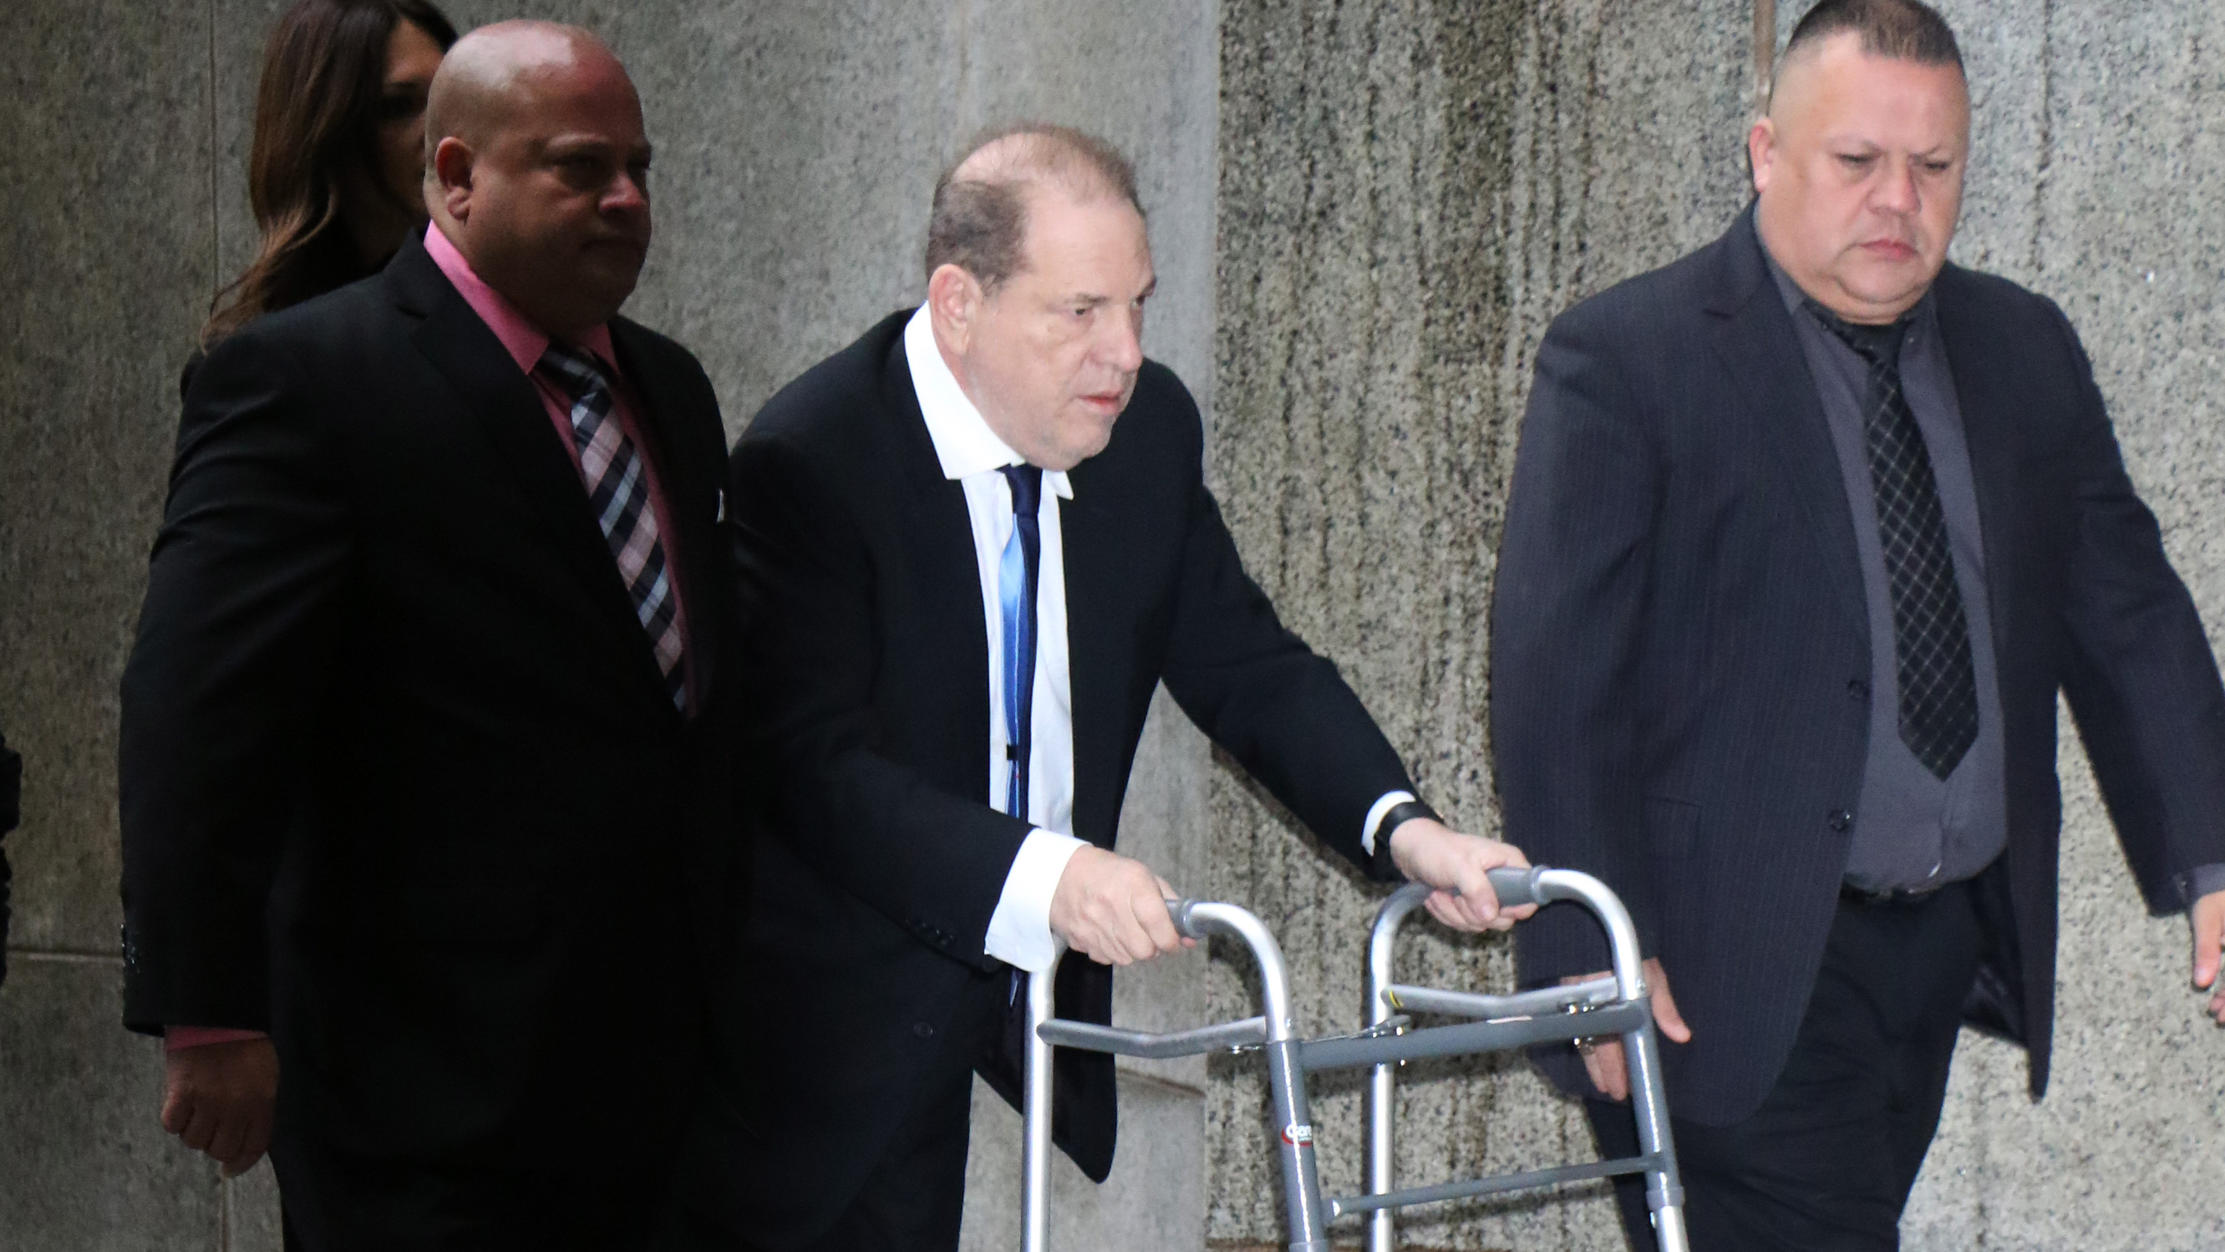 Entertainment Bilder des Tages NEW YORK, NY- December 11: Harvey Weinstein arrives to the Supreme Court in New York City on December 11, 2019. PUBLICATIONxINxGERxSUIxAUTxONLY Copyright: xRWx